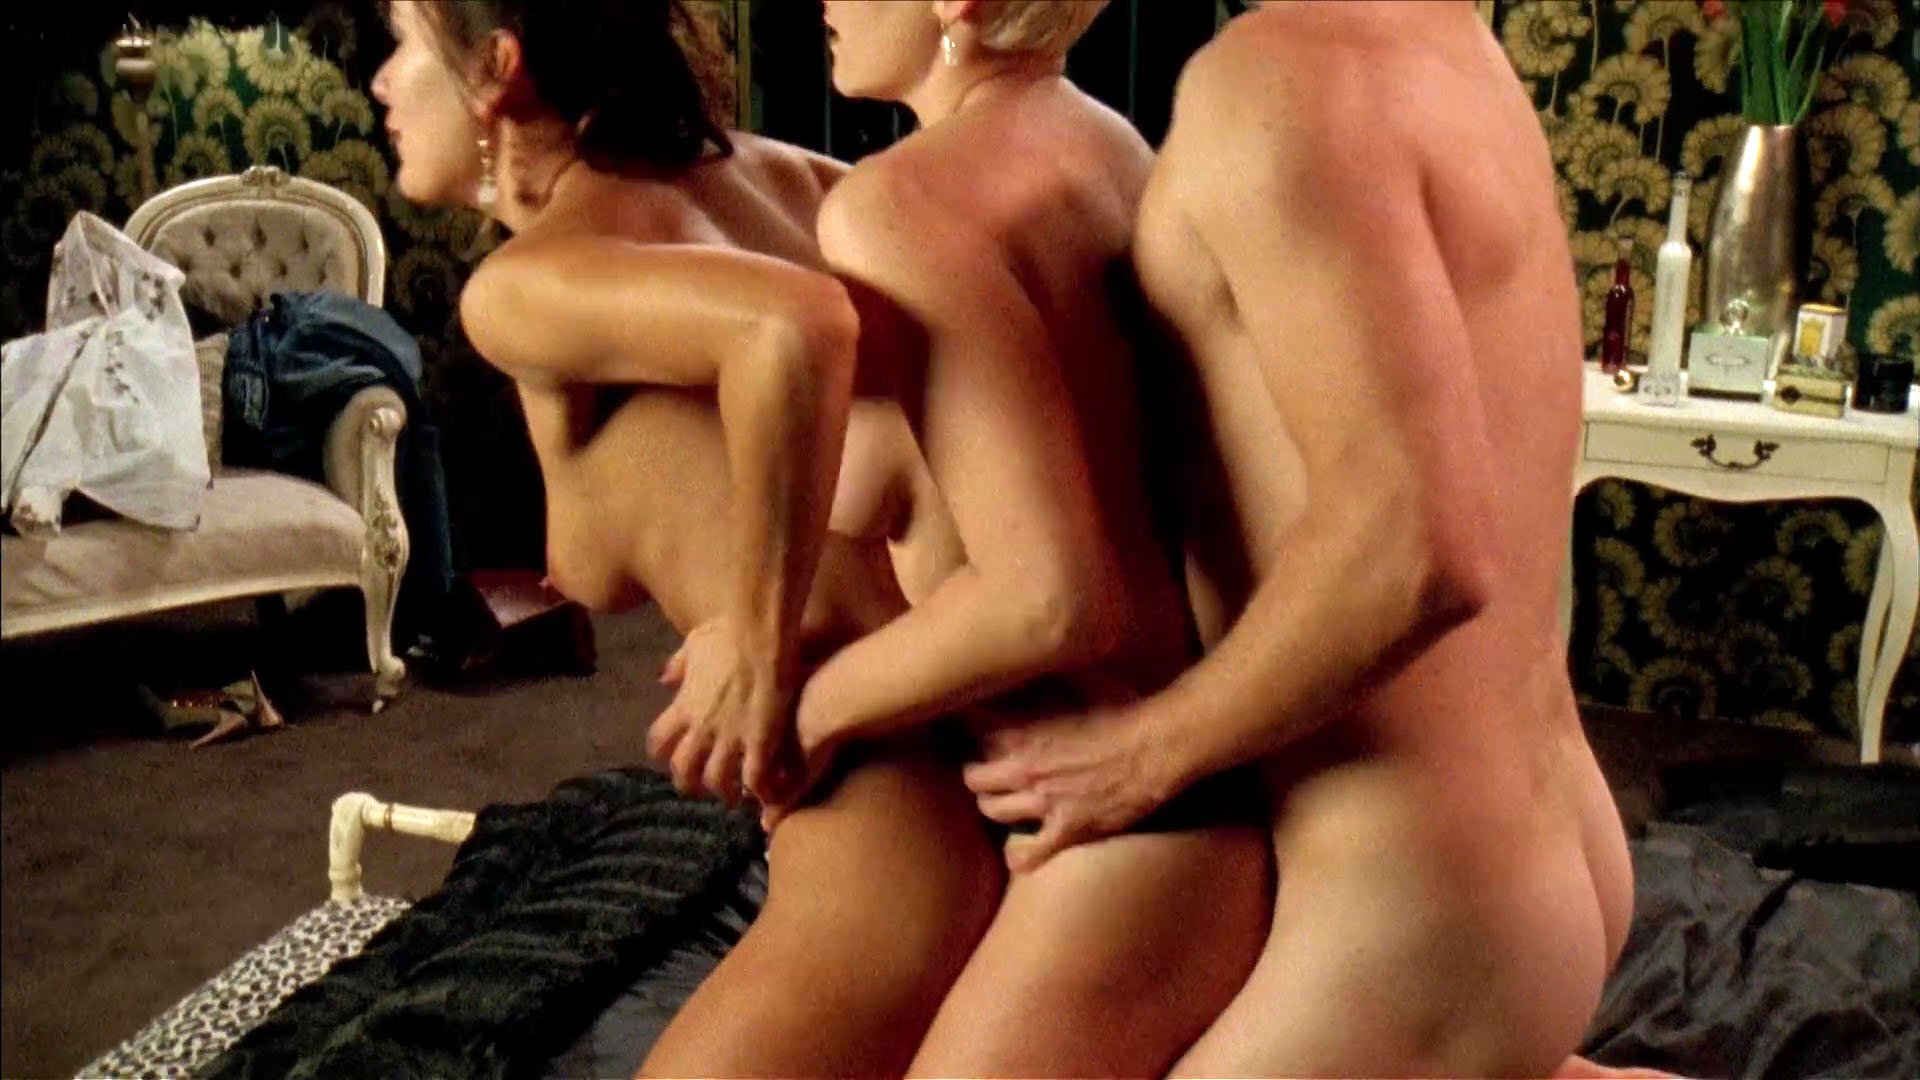 naked-photos-in-the-movie-sex-in-the-city-girlgirl-hardcore-finger-anal